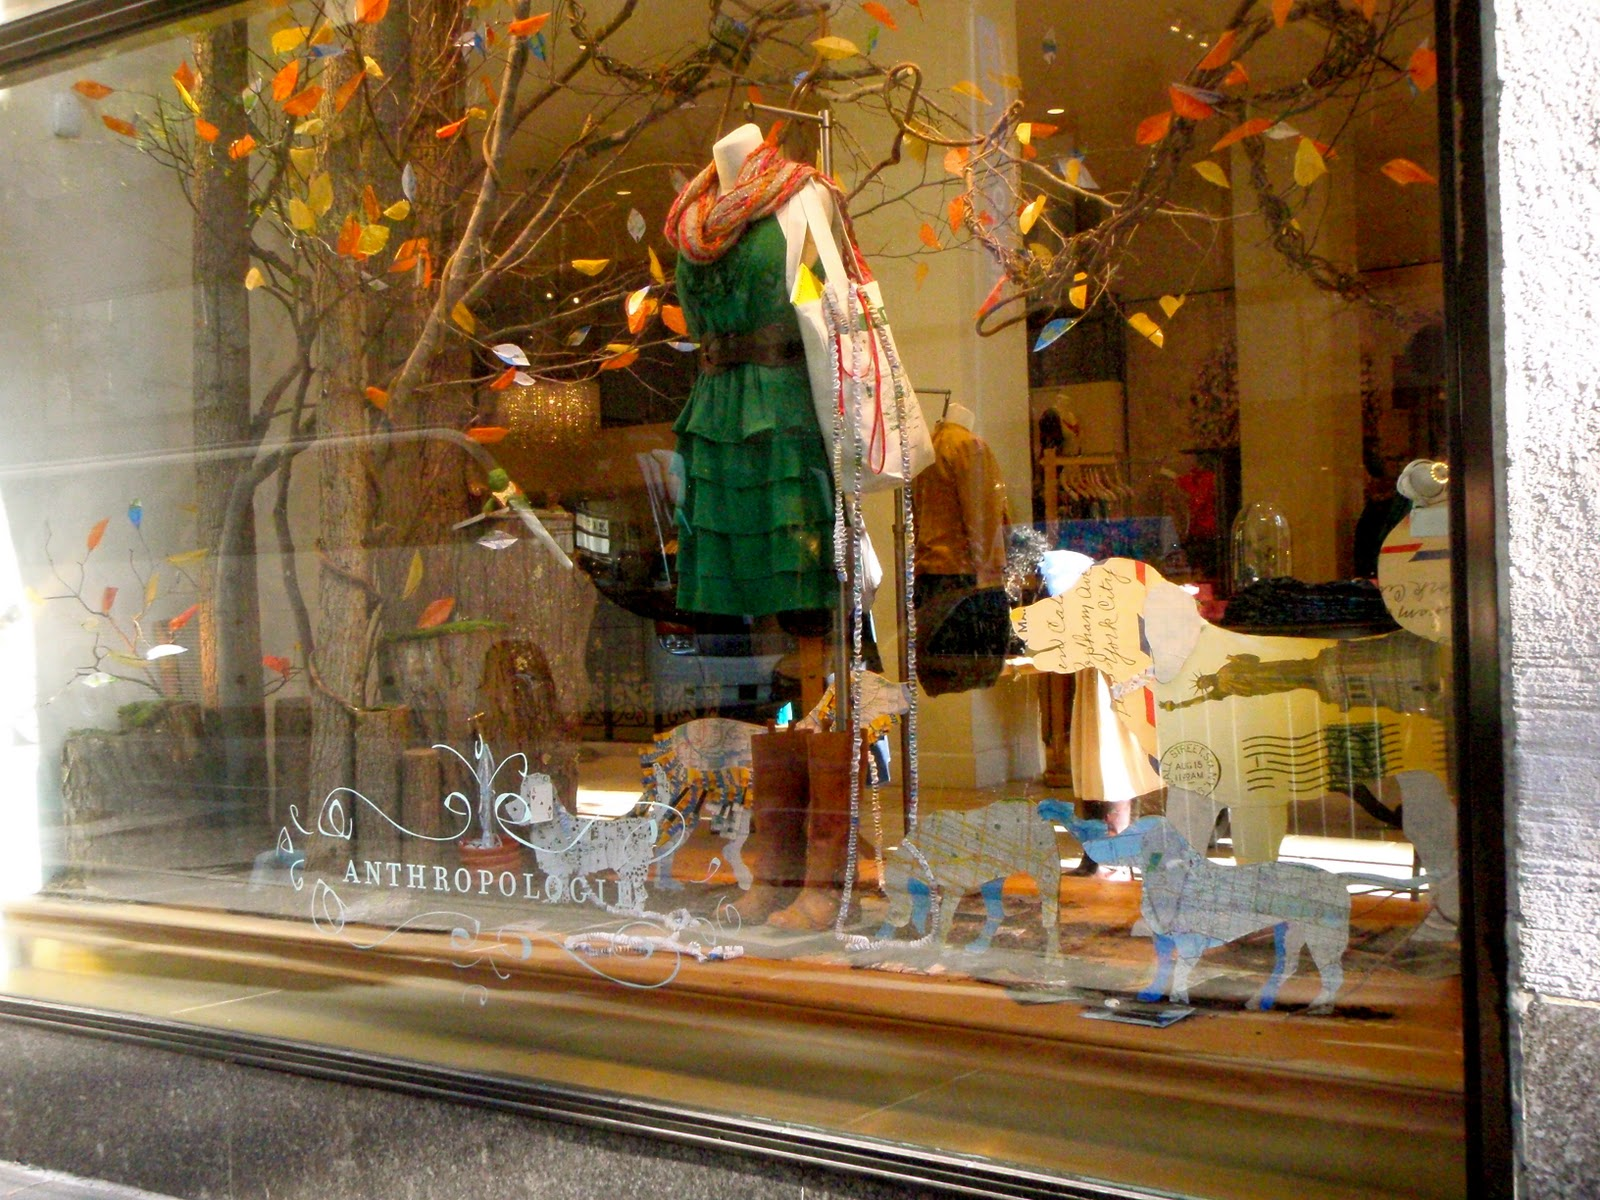 The scarf, the boots, the clothes in autumnal colors and the leaves are marking the autumn in this window display.